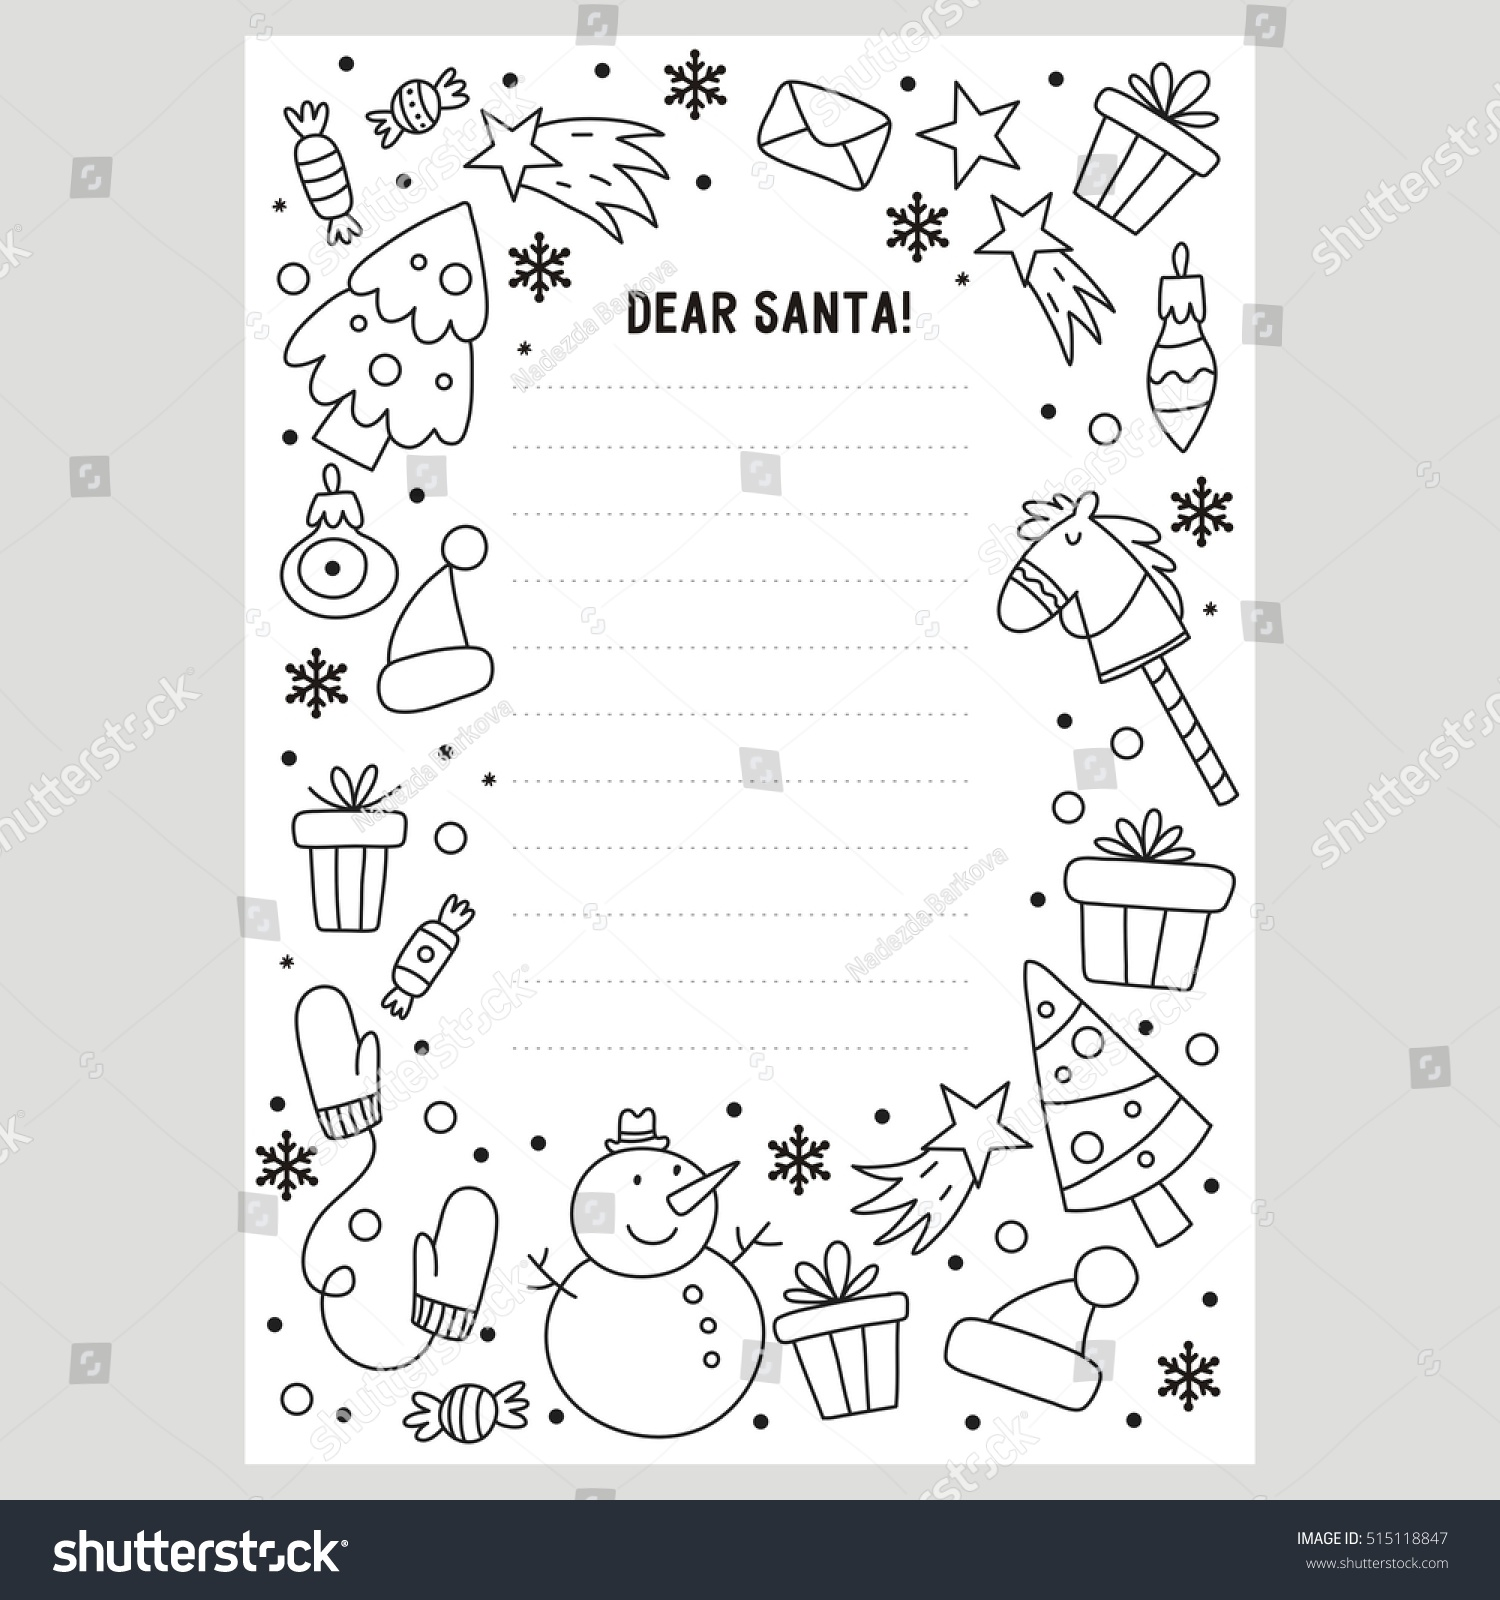 Dear Santa Coloring Page With Letter Stock Vector Royalty Free